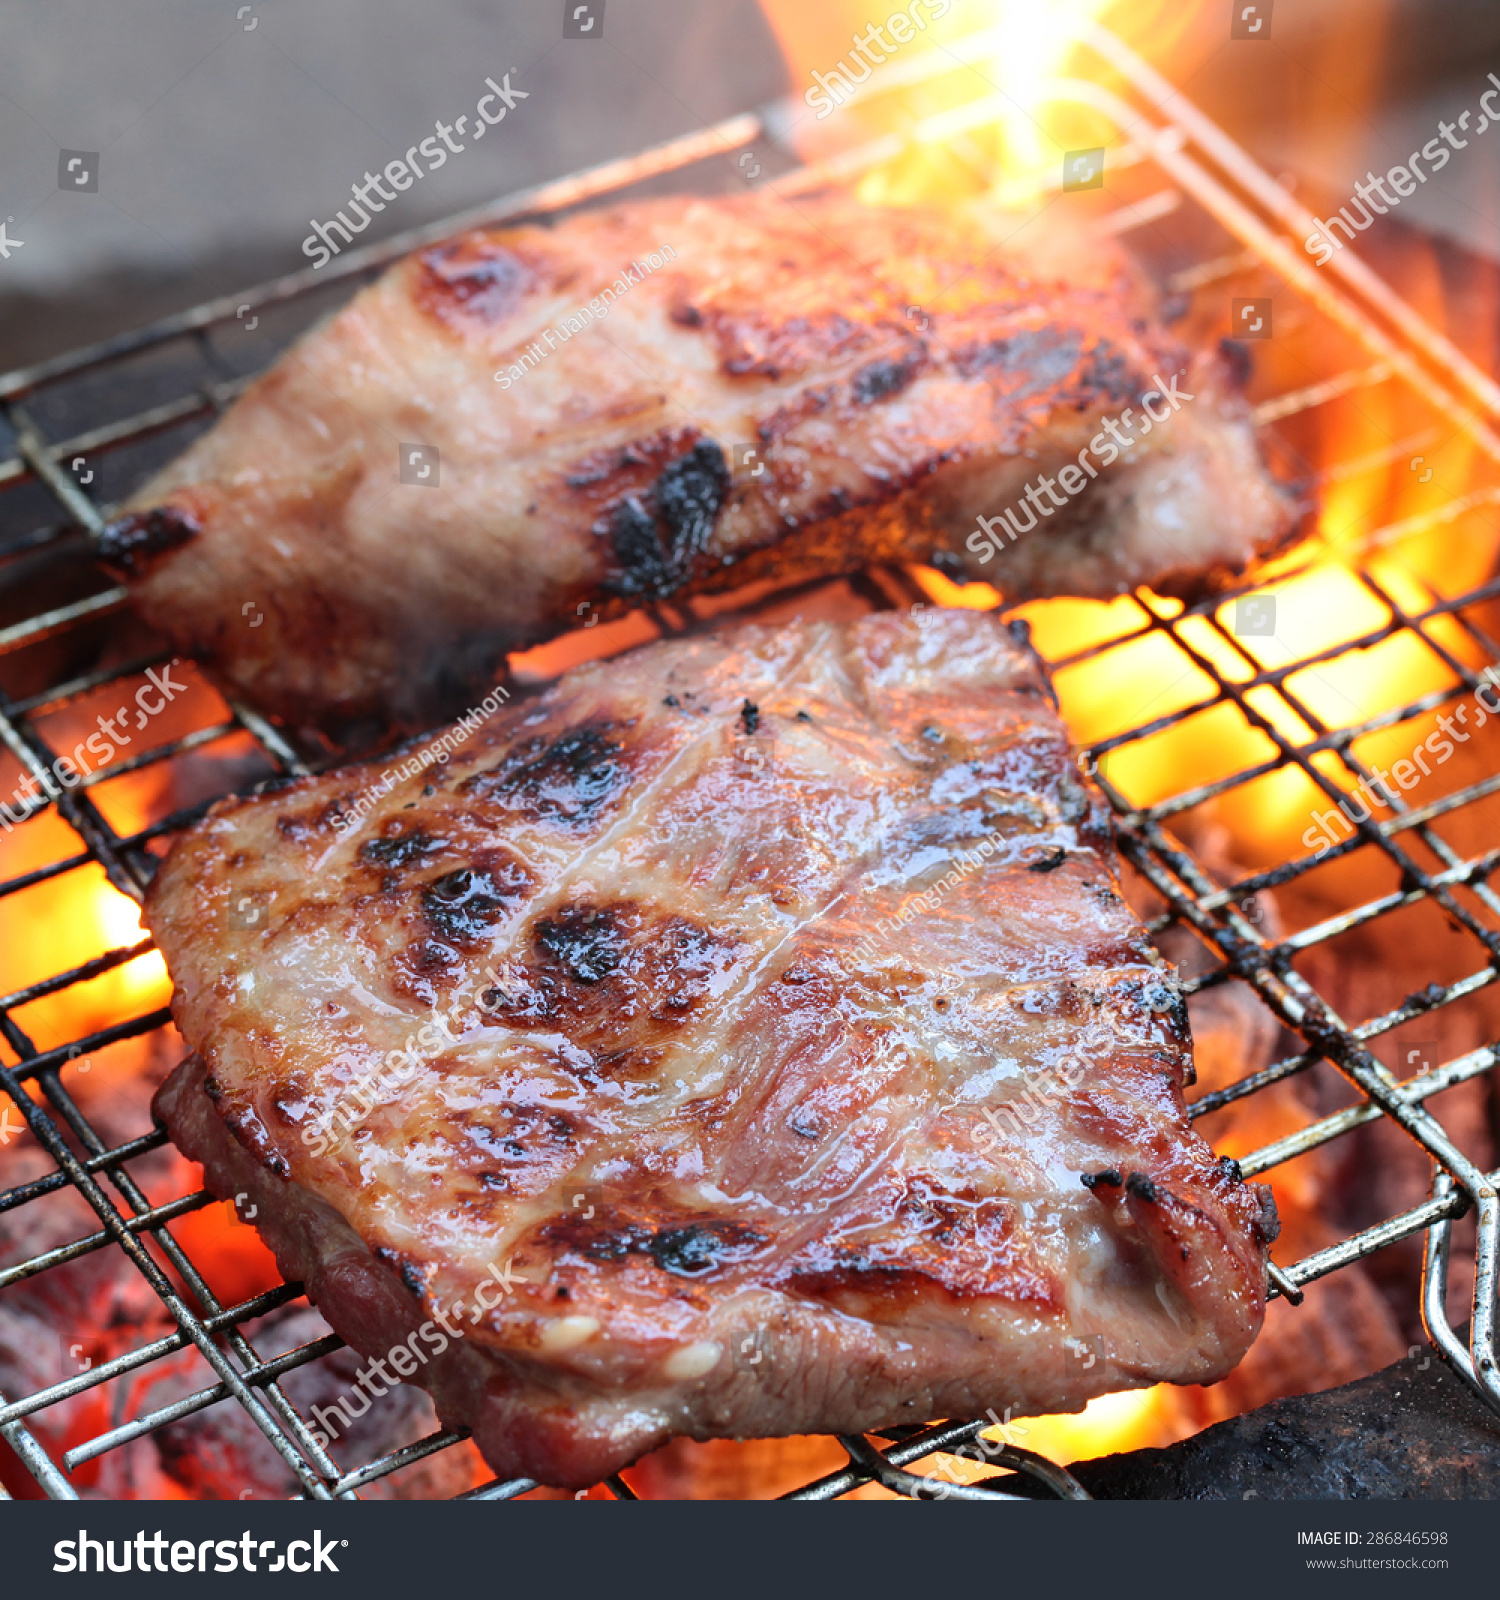 Grilling Sirloin Steak Flame Broiled On Stock Photo ...